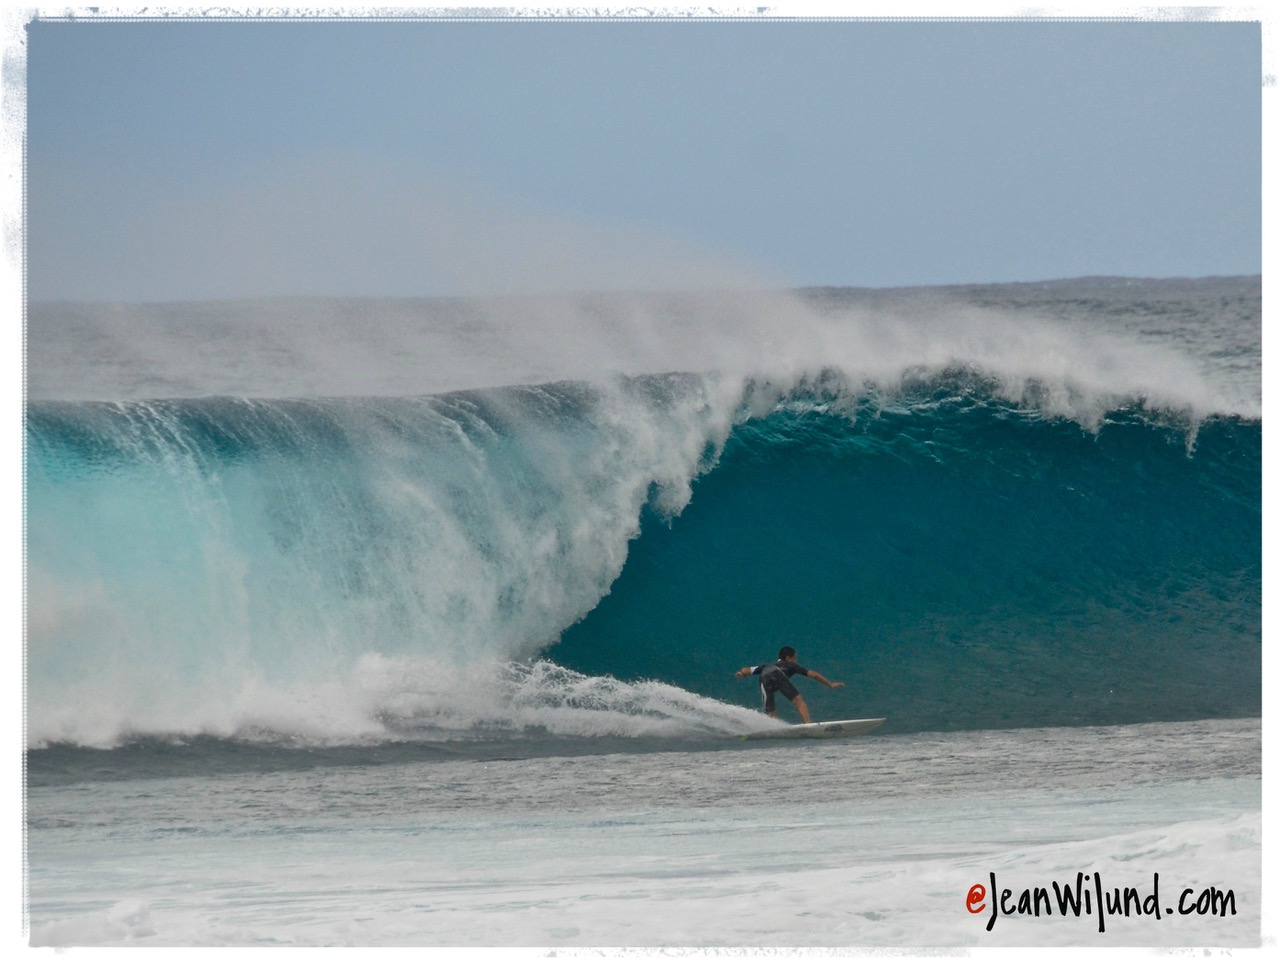 Pipe Master Surfer -- Life Is Either a Daring Adventure Or Nothing At All ~ Take It On! via www.jeanwilund.com